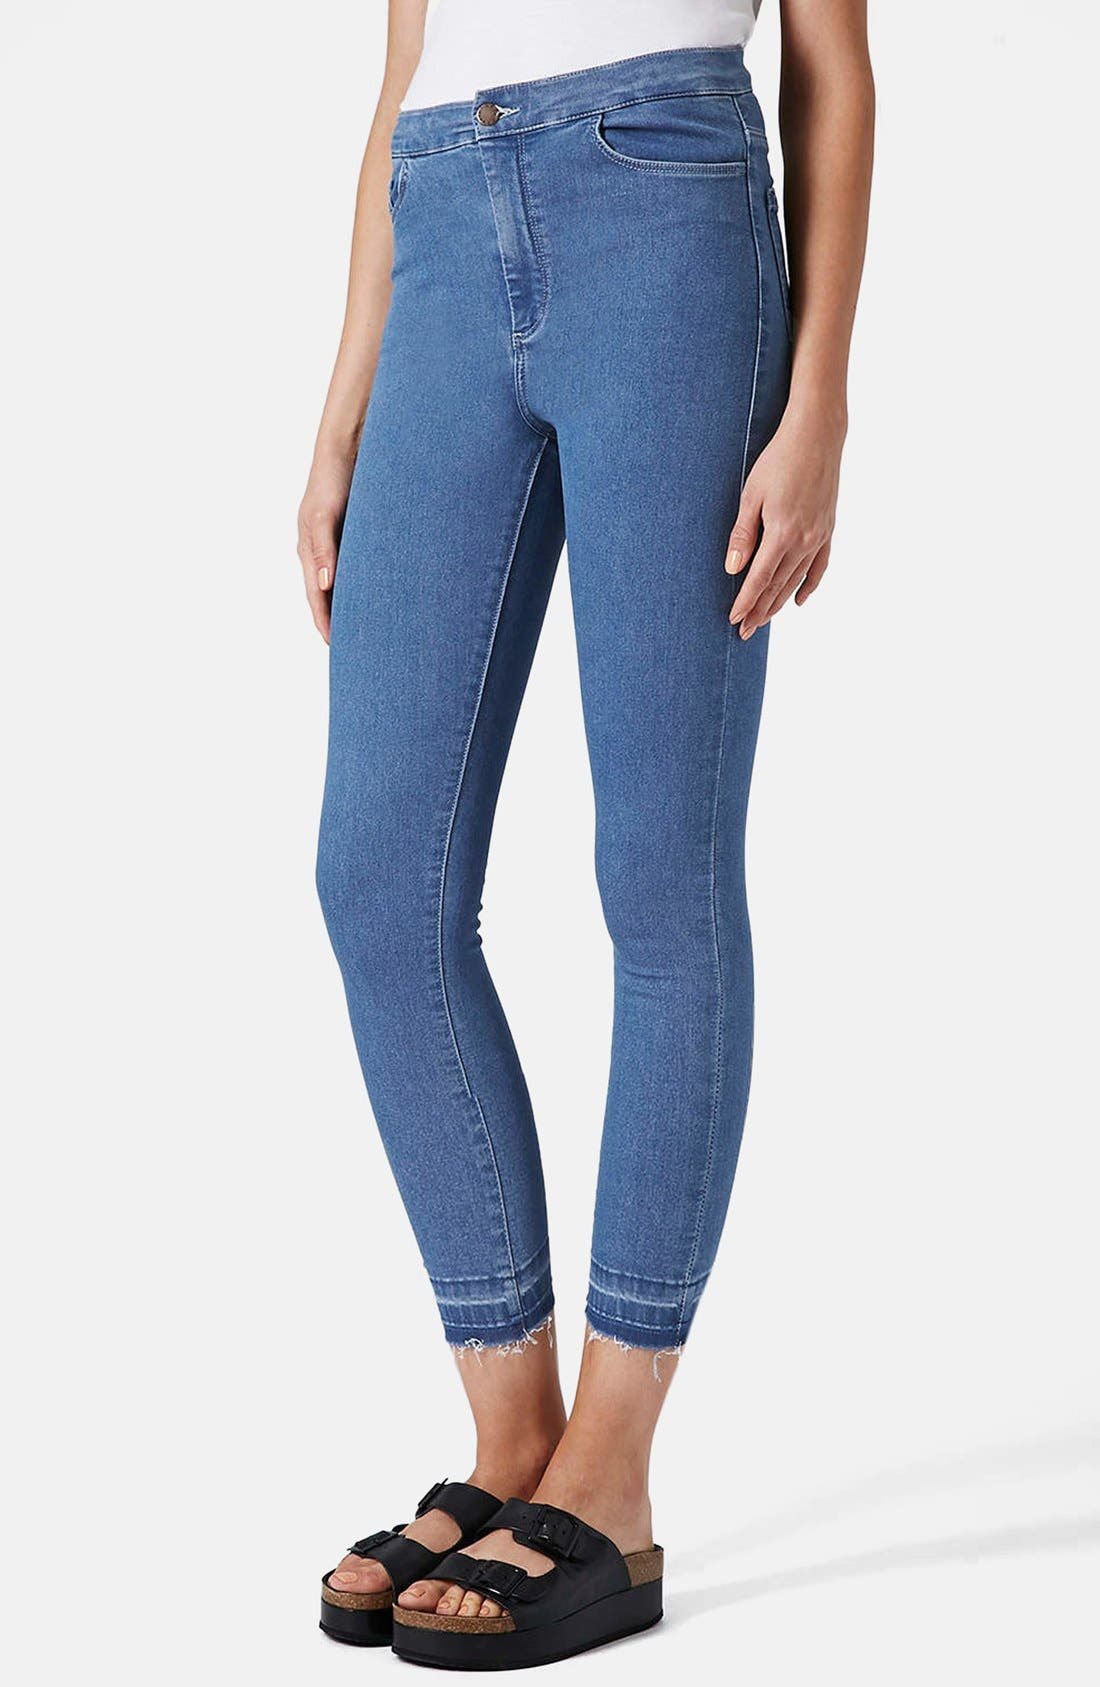 Main Image - Topshop Moto 'Joni' High Rise Crop Skinny Jeans (Light)